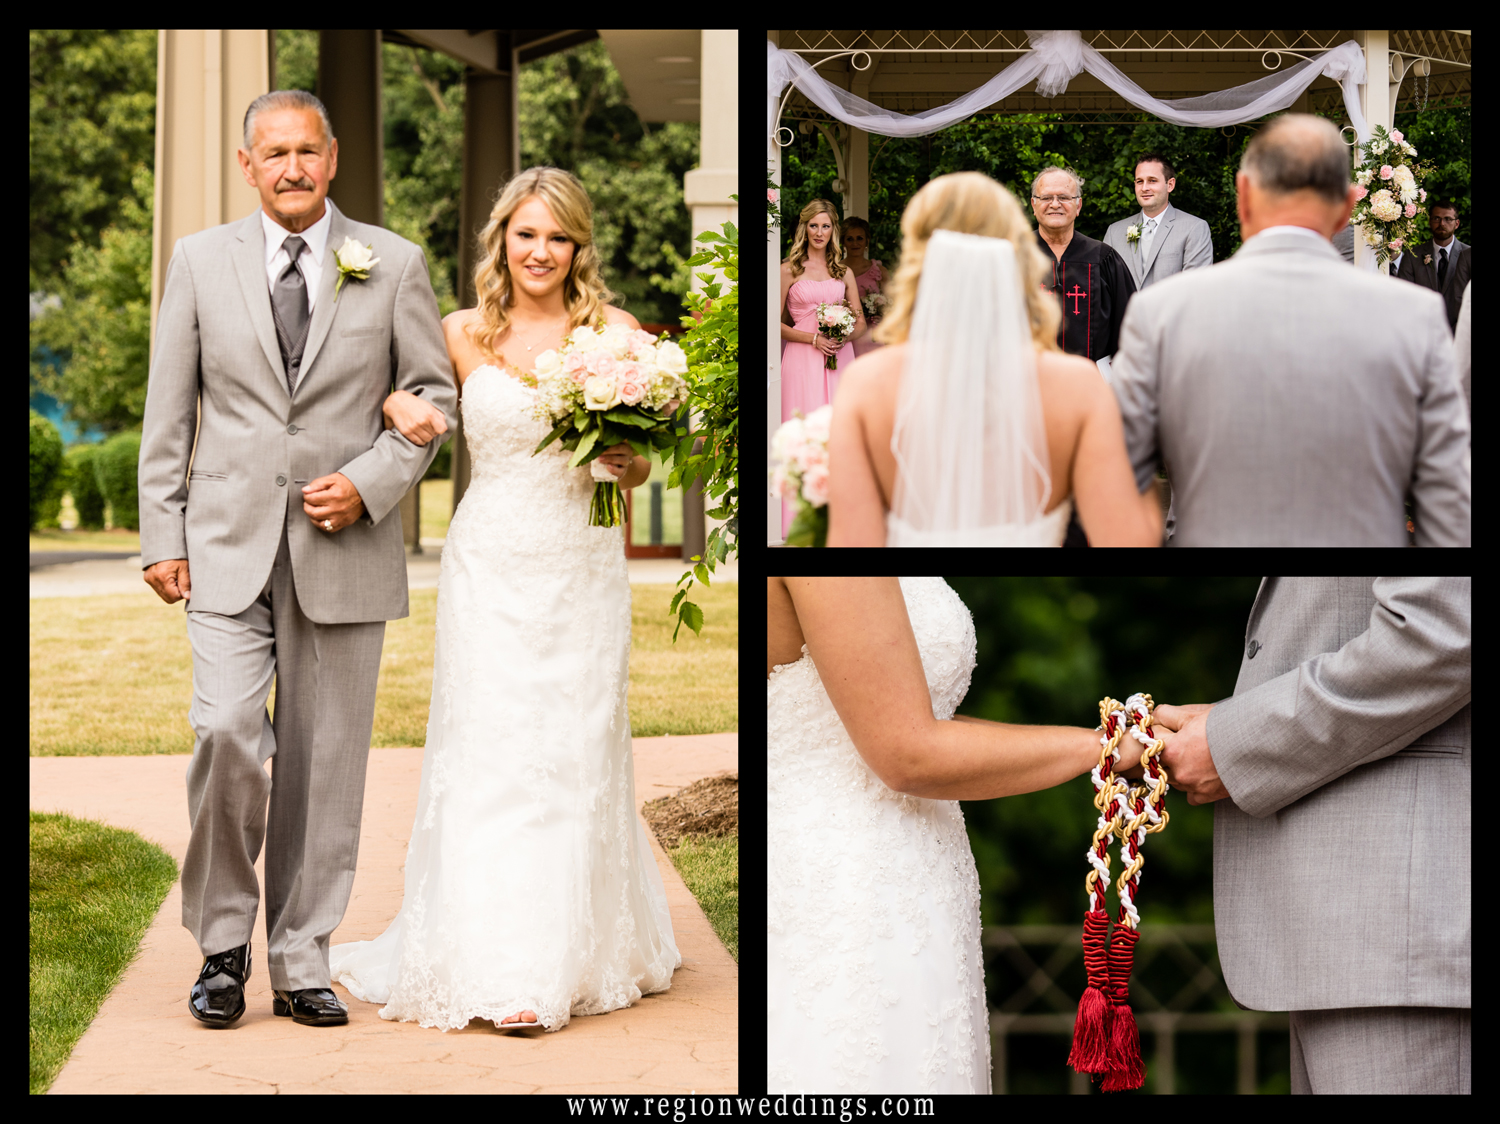 Outdoor wedding ceremony at The Halls of St. George